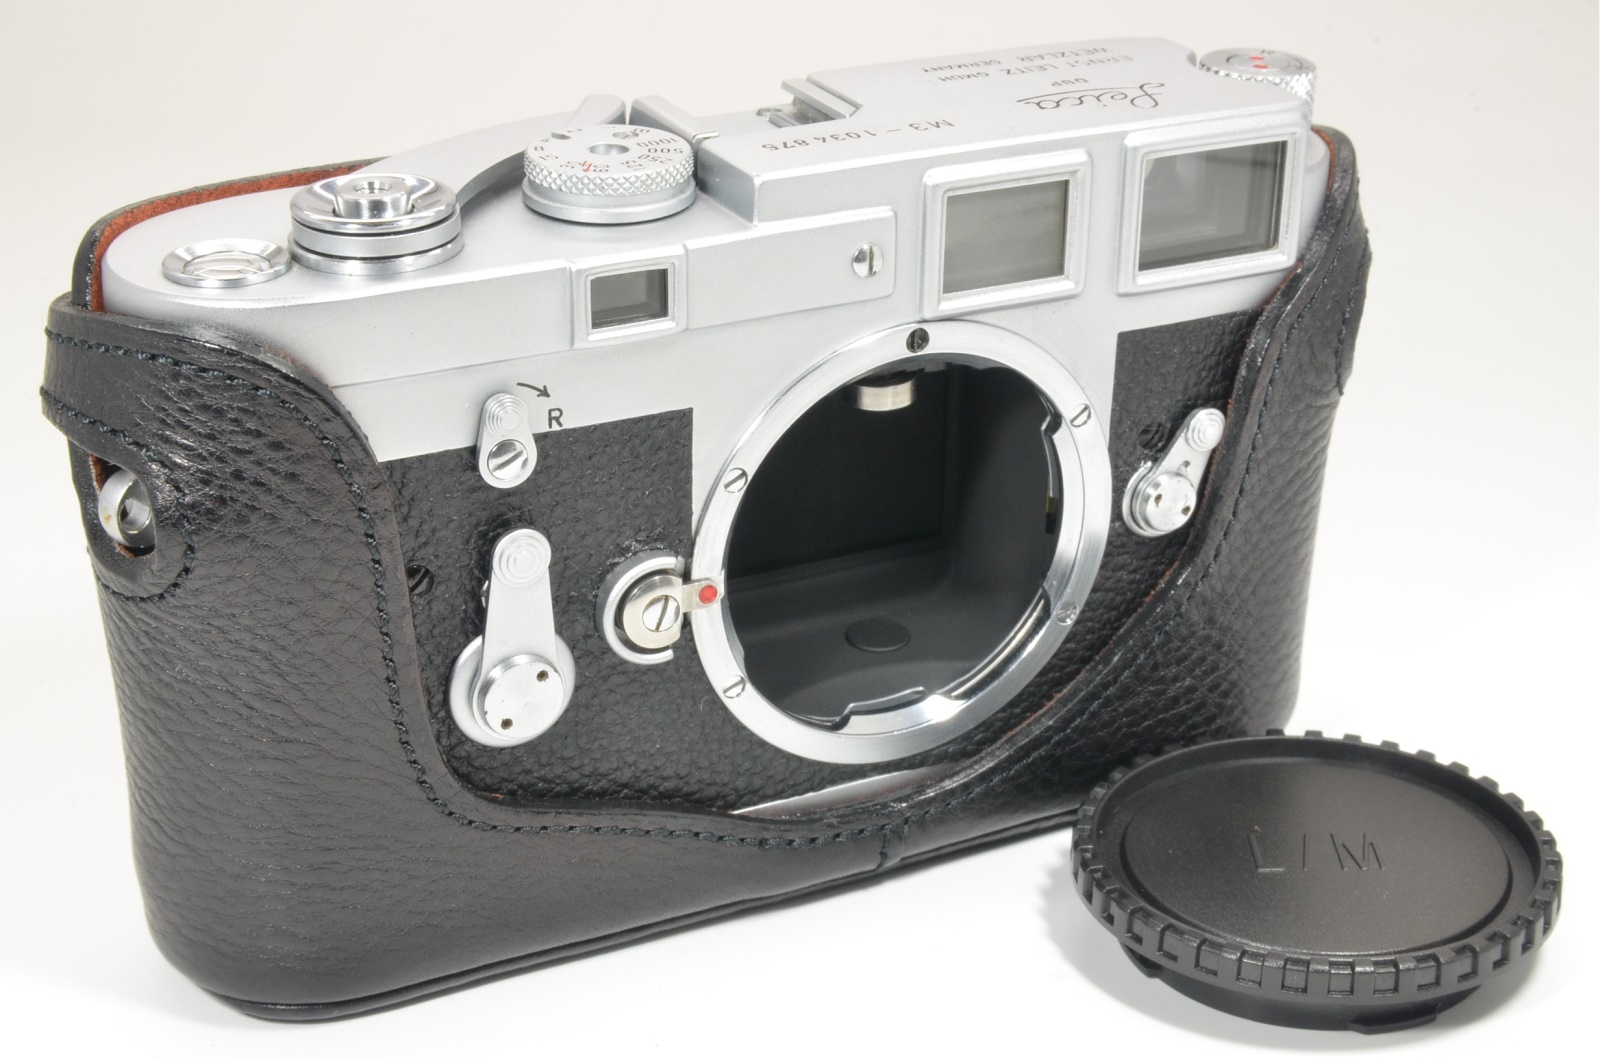 leica m3 single stroke s/n 1034875 year 1961 with leather case, shooting tested